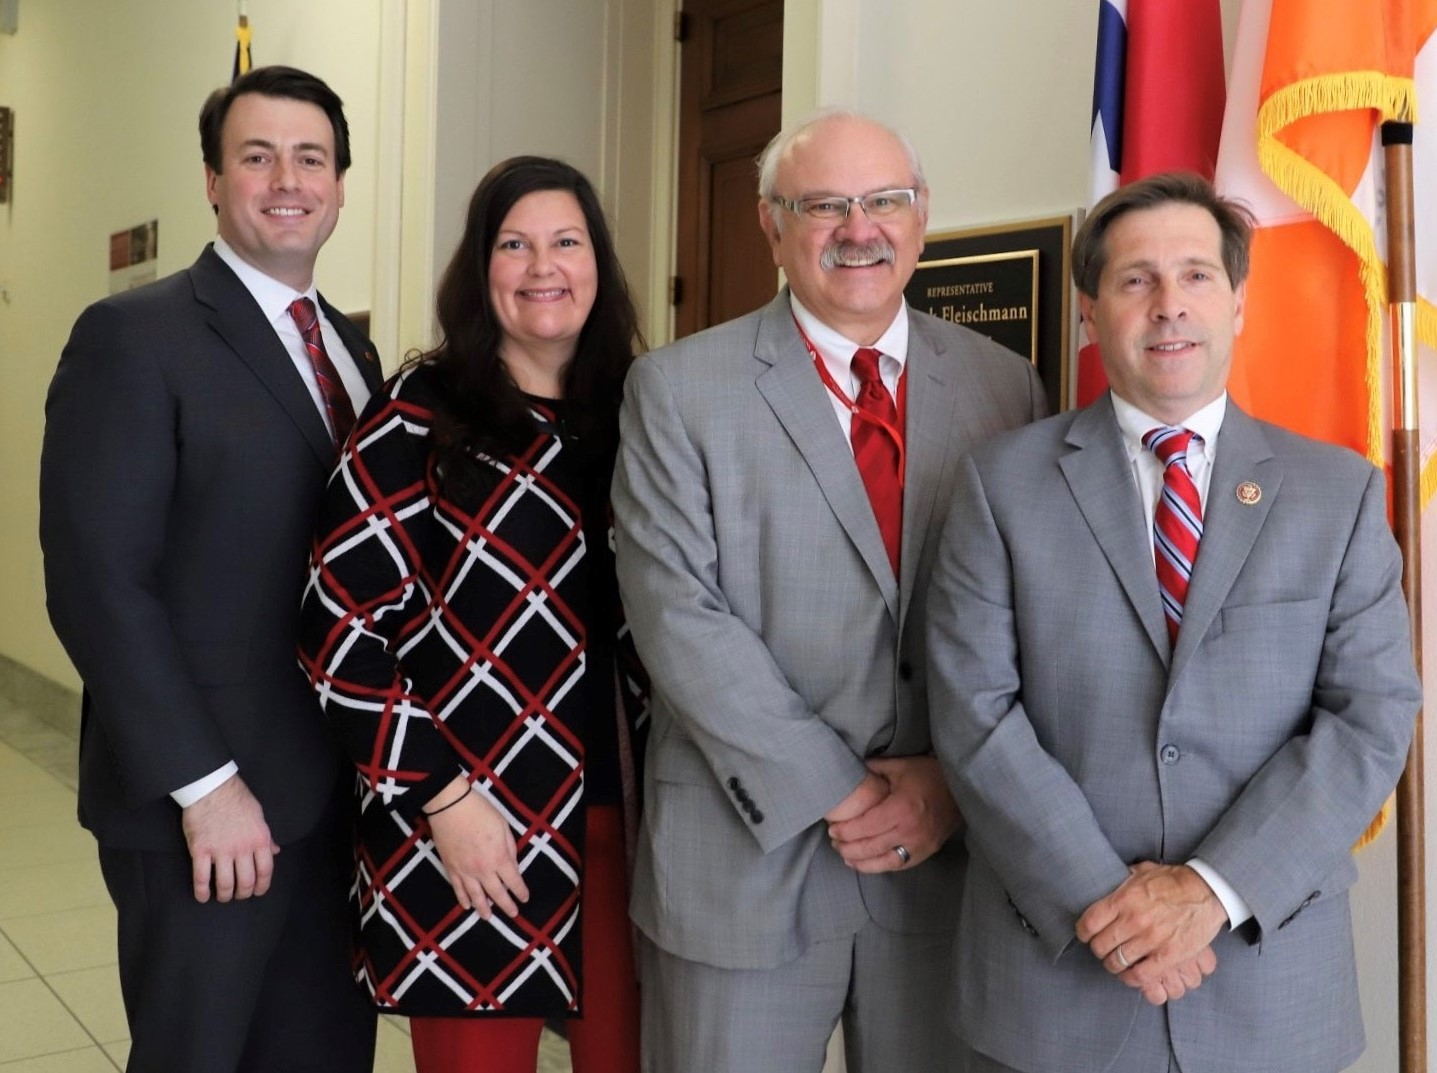 Tennessee advocate group